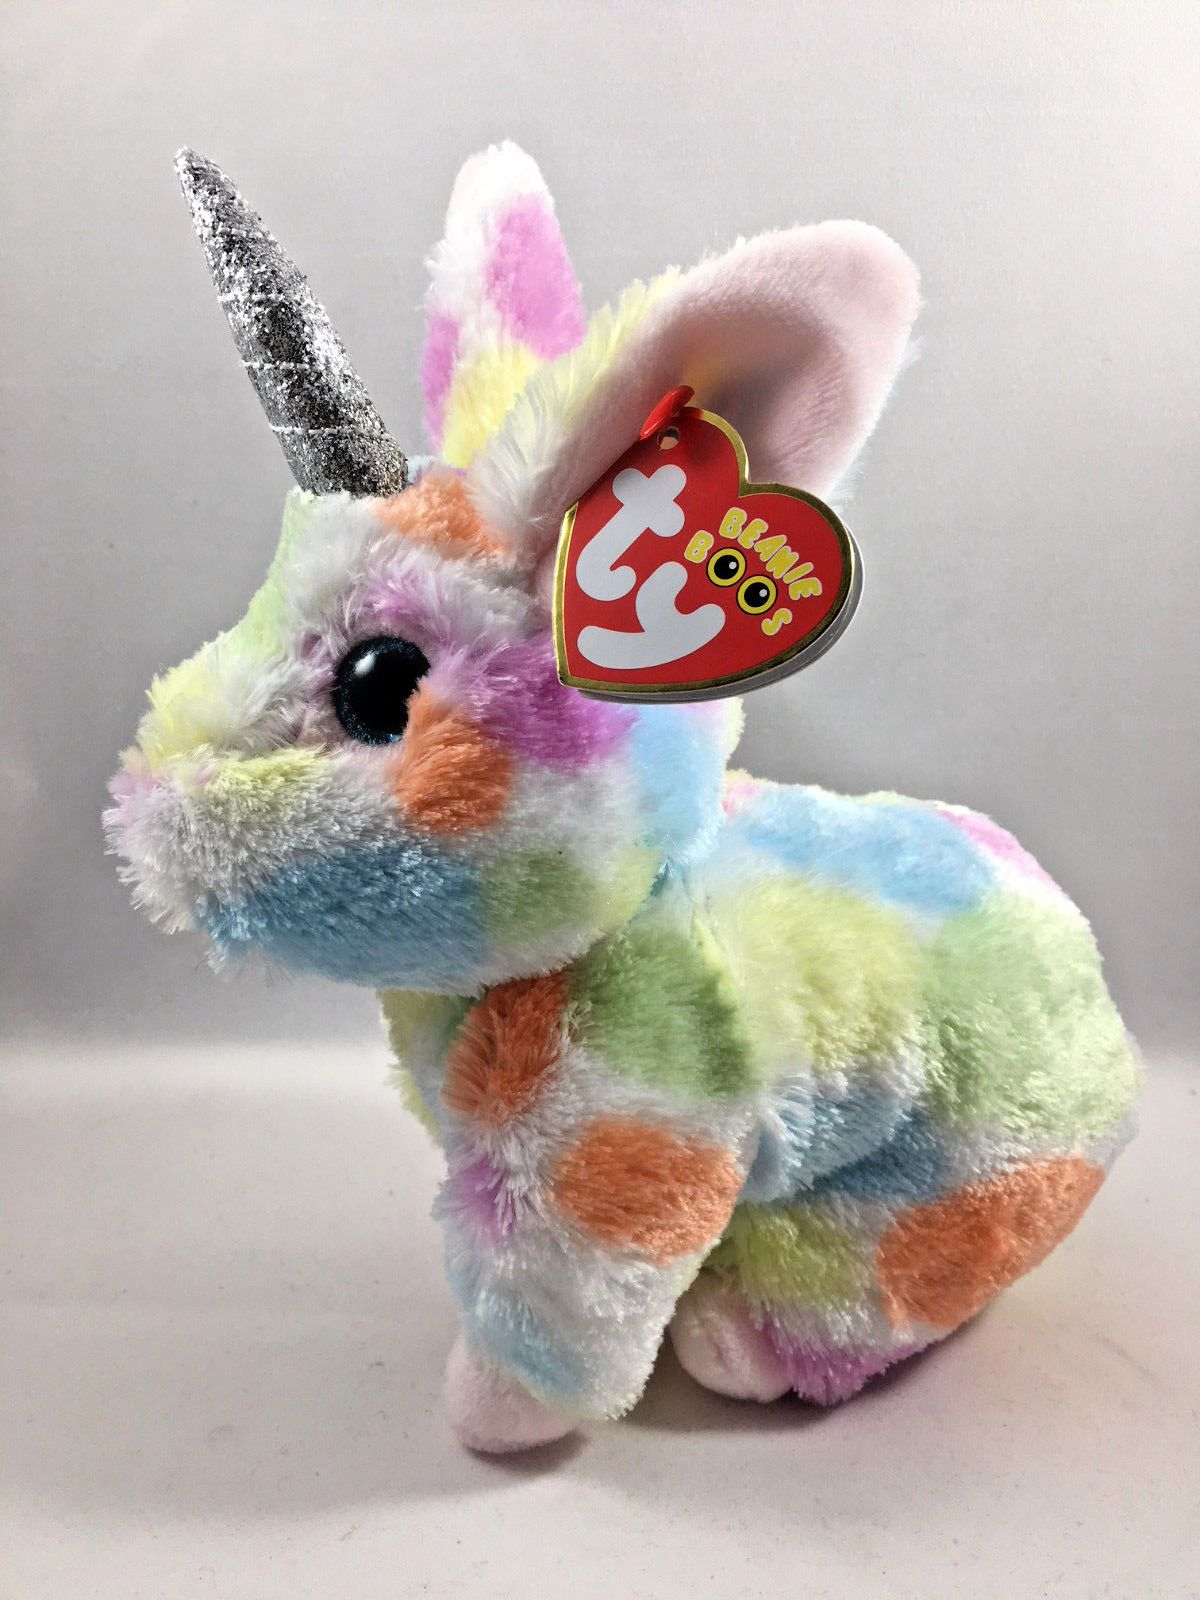 6 Inch NEW MWMT Ty Beanie Babies ~ LOLA the Tie Dyed Llama